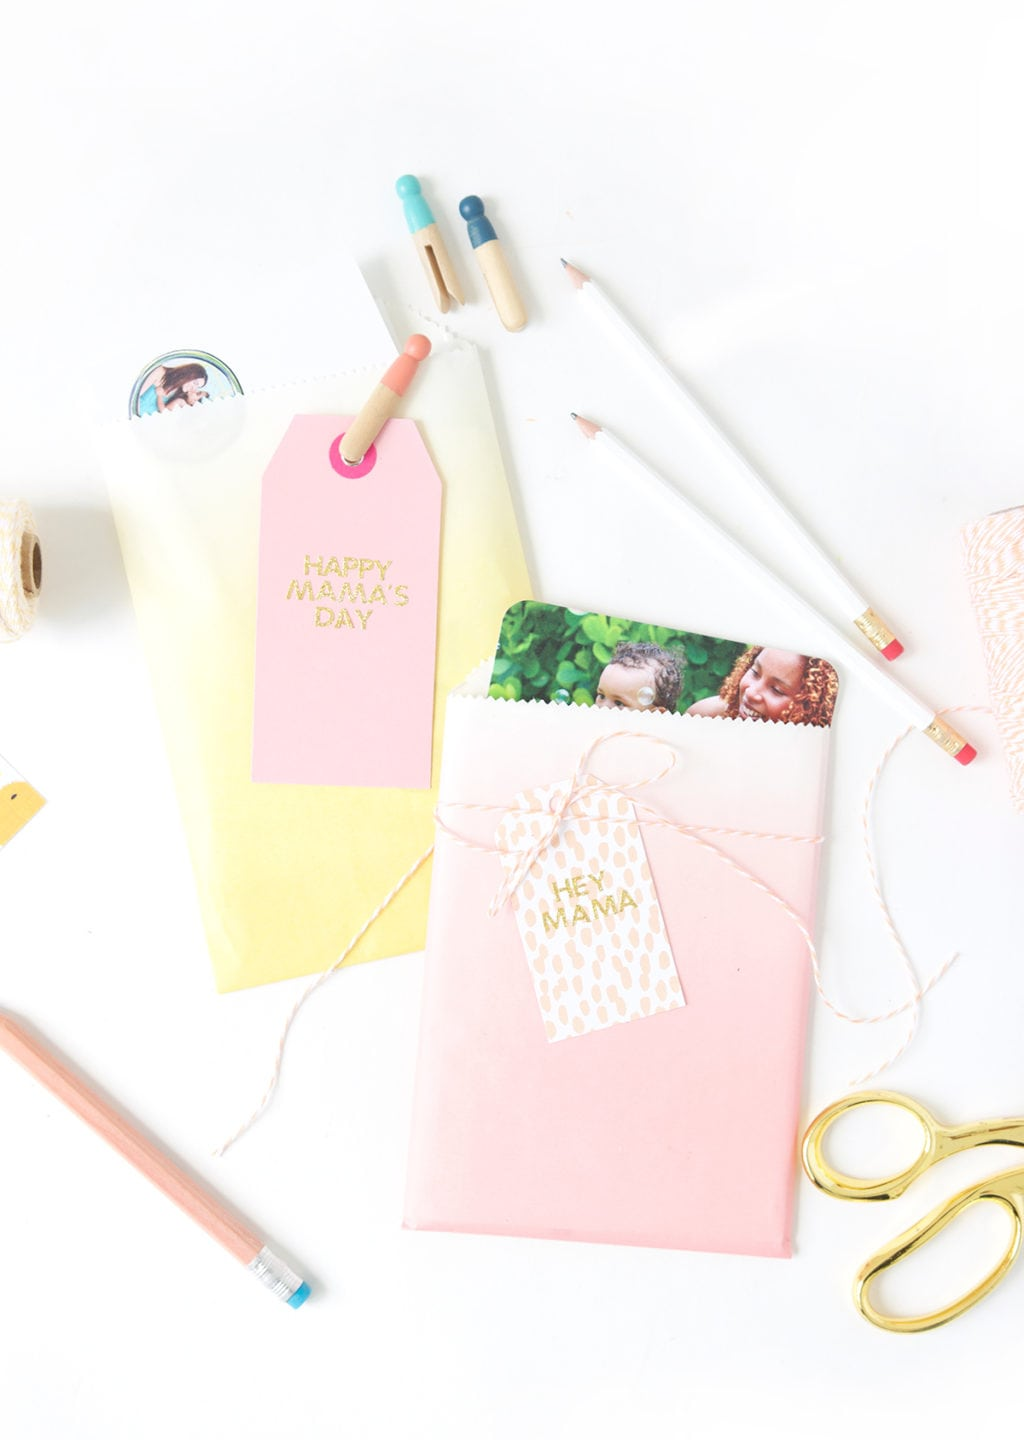 Mom's have names too but sometimes they are easily forgotten. Give the perfect mother's day gift of modern stationery for moms that they'll use throughout the year.